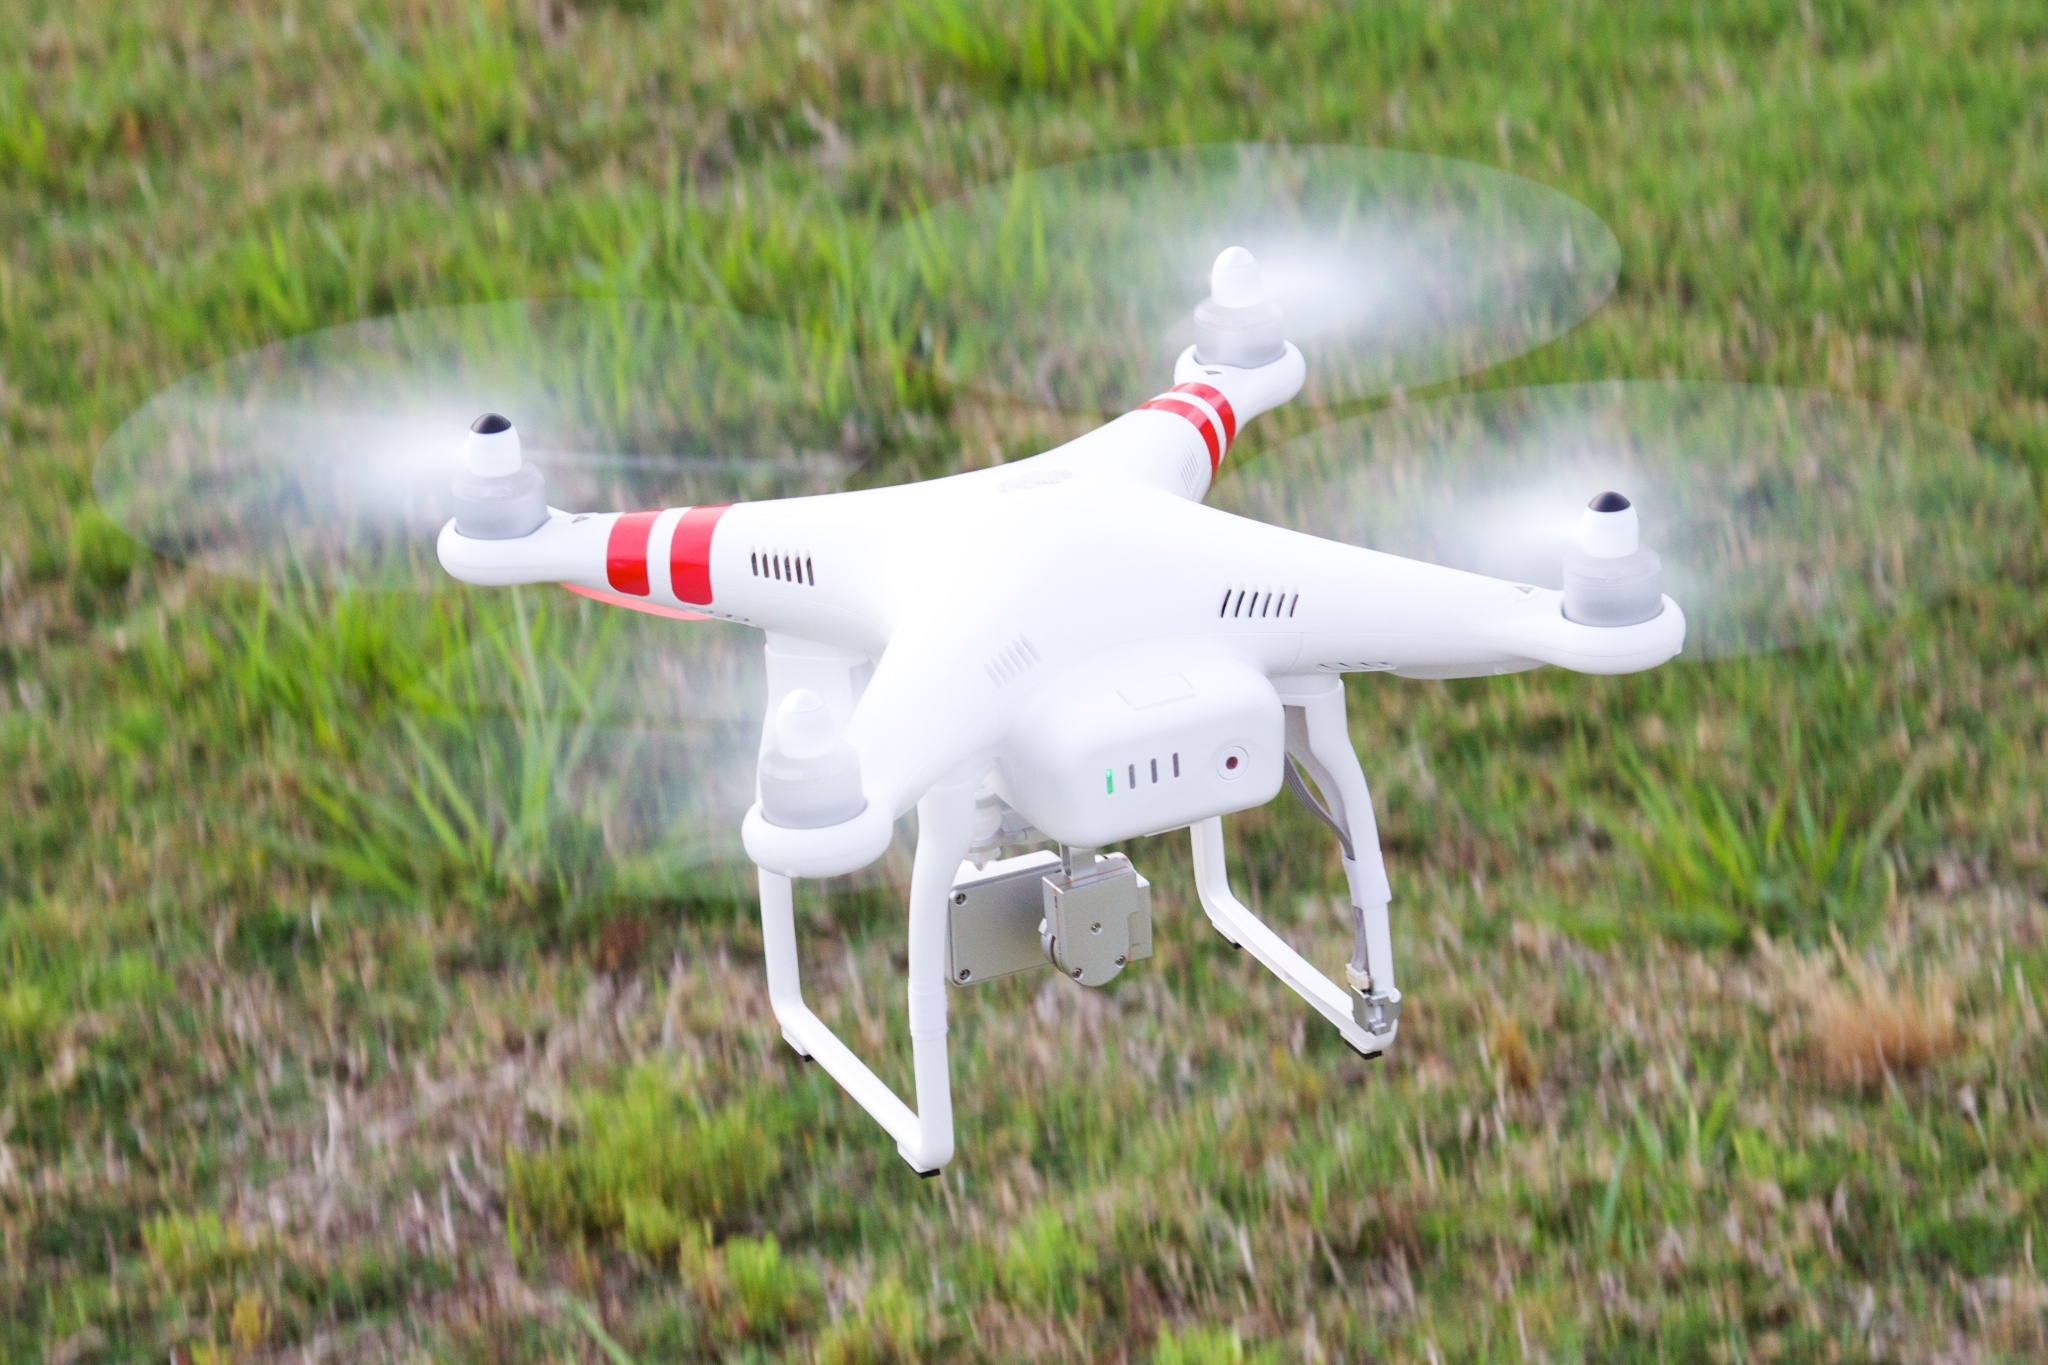 Flying And Crashing A 1300 Quadcopter Drone